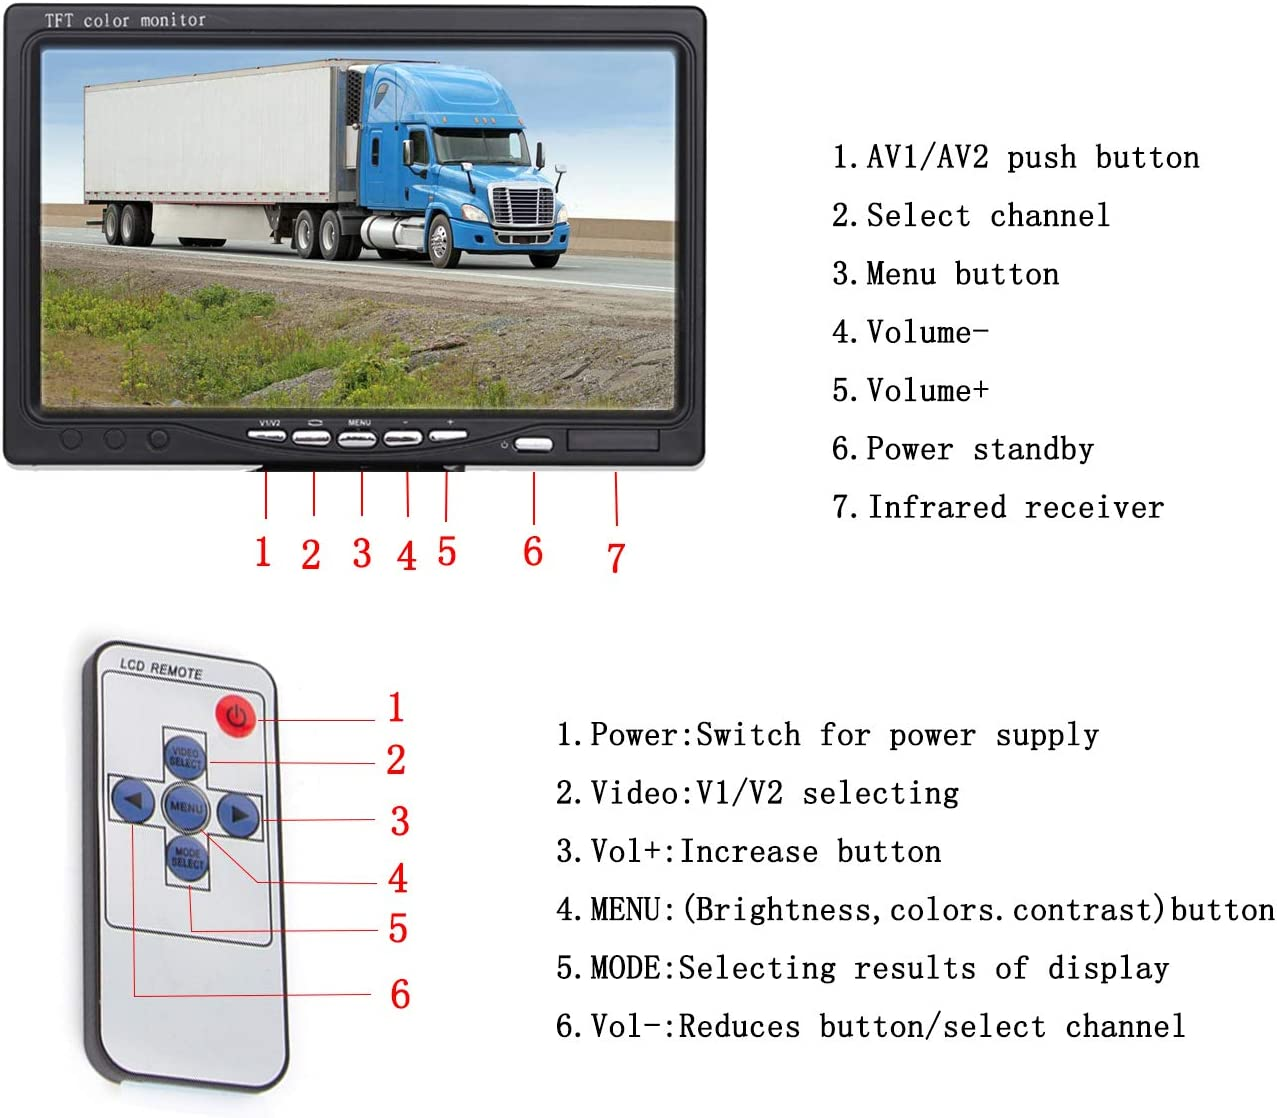 Trailer,Truck 4 Pins Aviation Extension Cable for 33FT Length RVs Bus Yasoca Vehicle Backup Camera 7 TFT Monitor,18 IR Night Vision Rear View Camera Without Gride Line IP 68 Waterproof